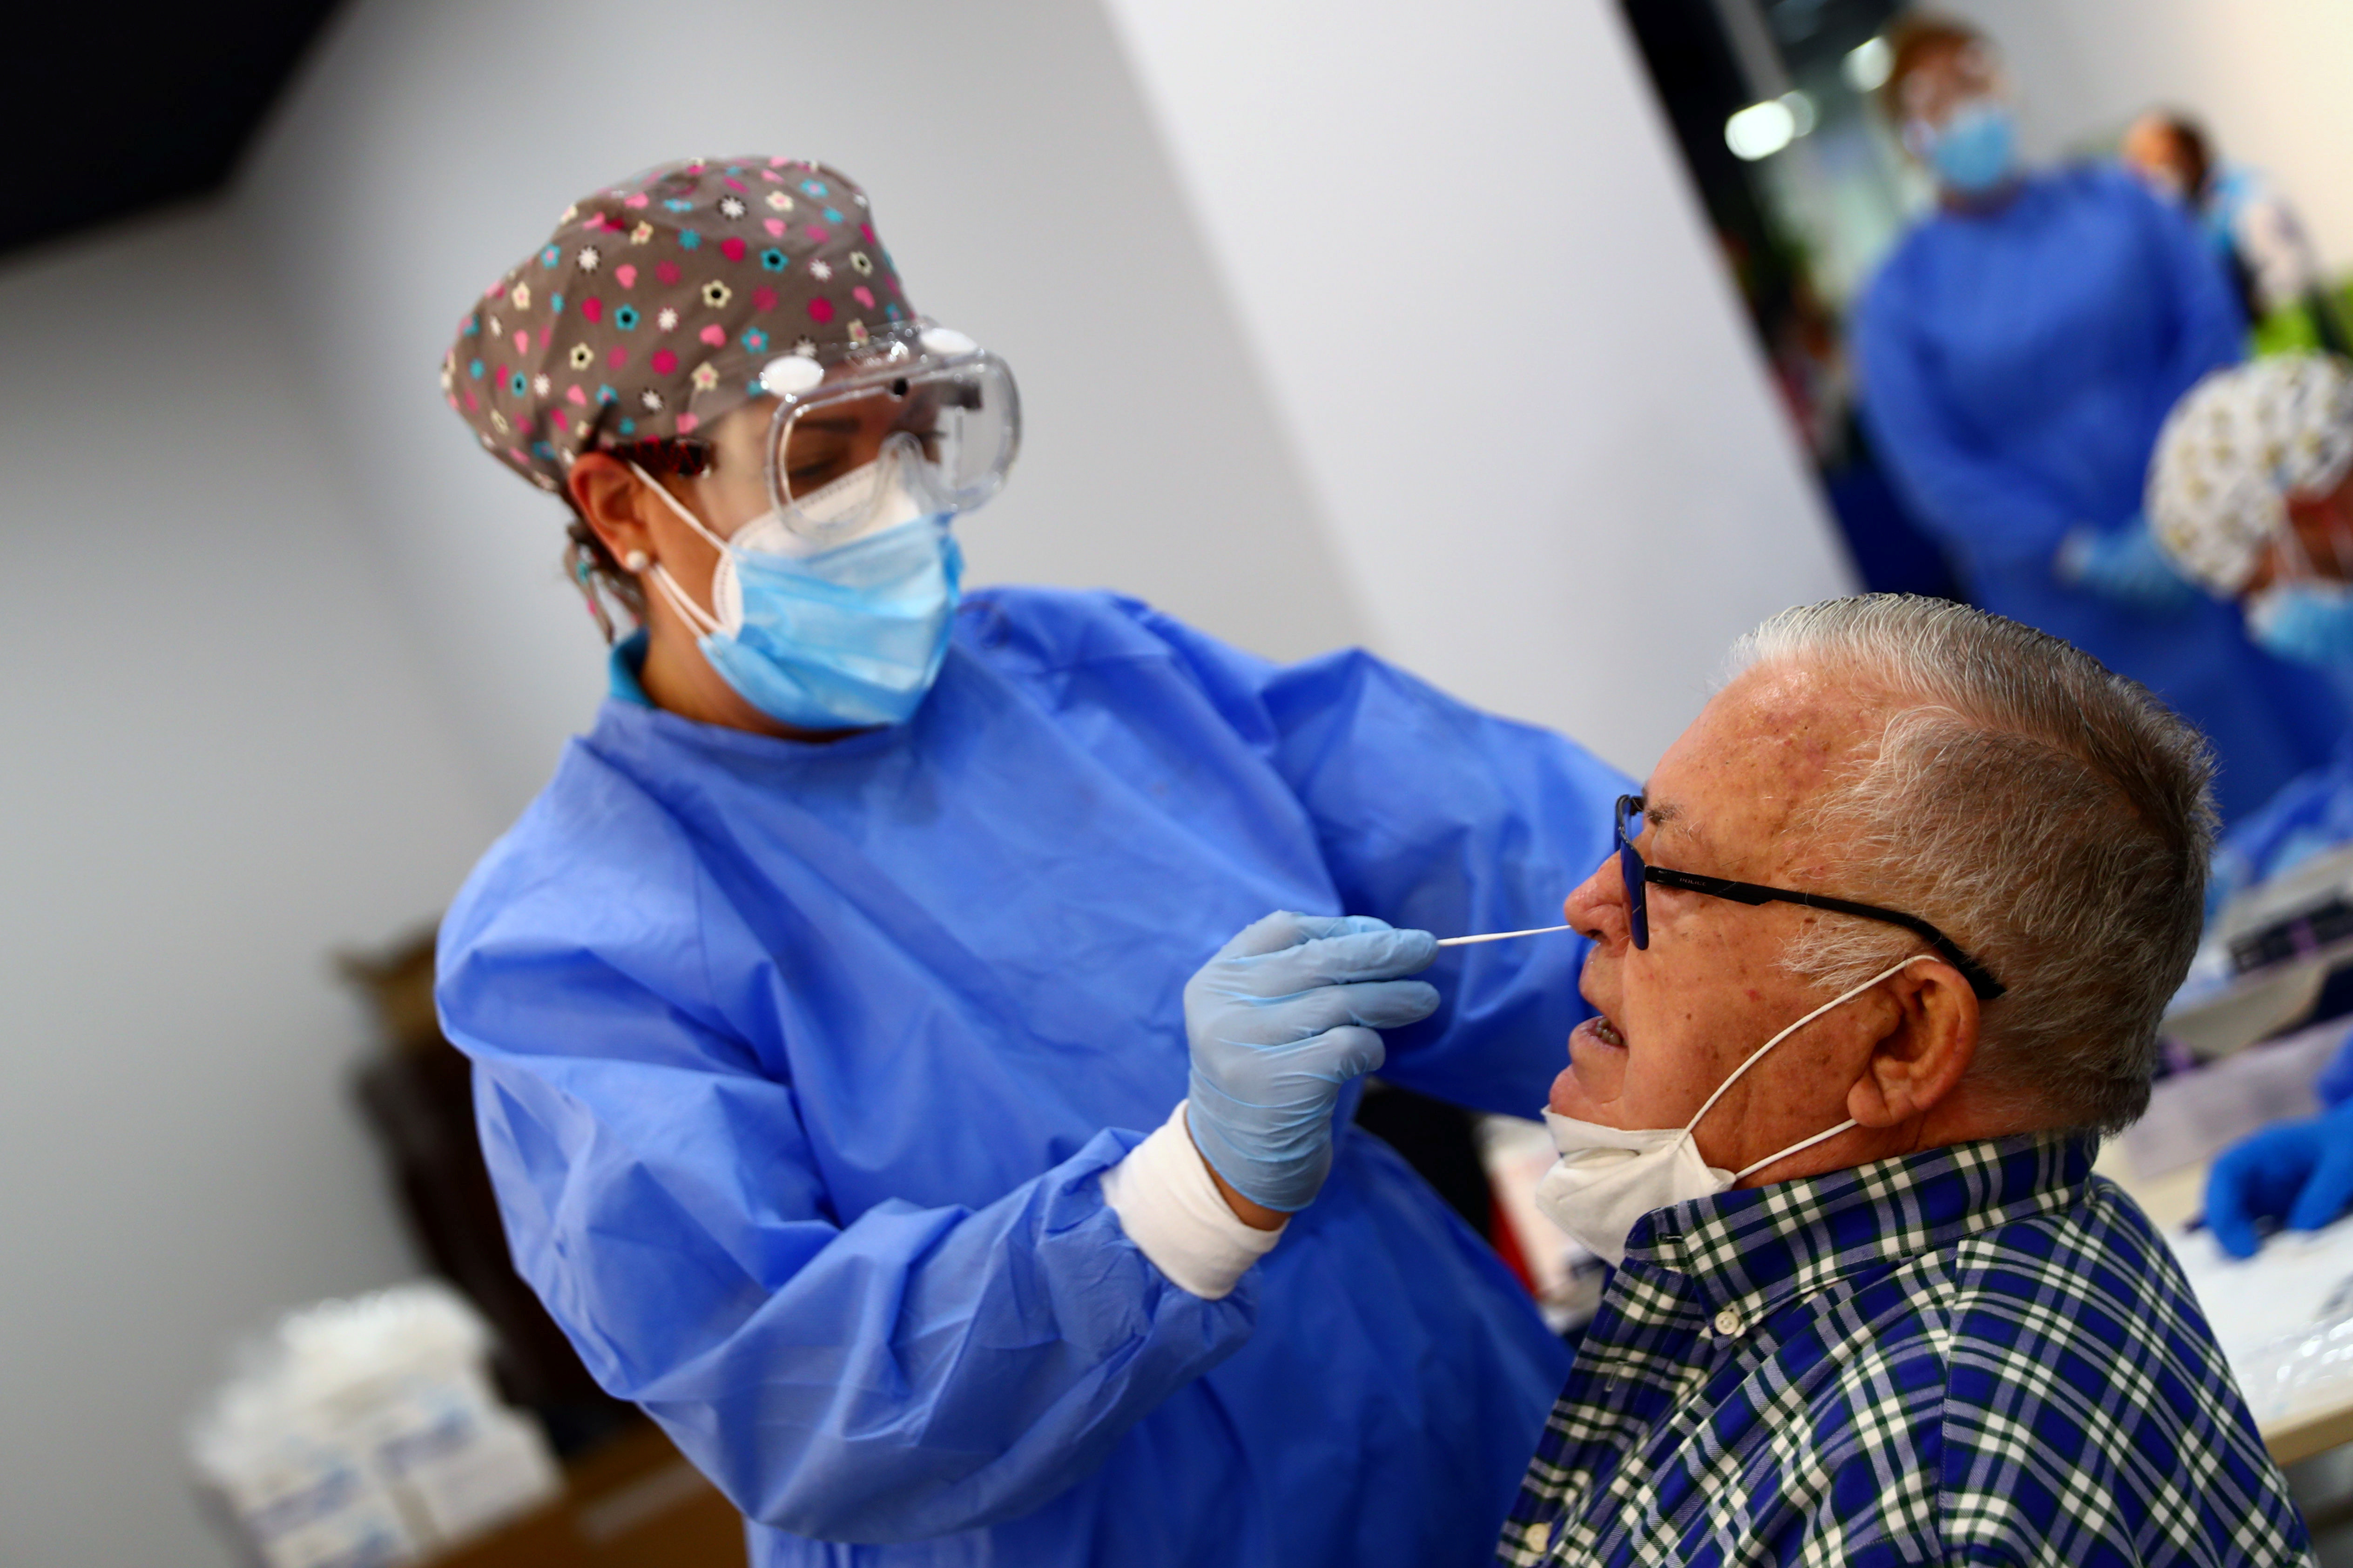 A man has a swab sample taken for a coronavirus disease (COVID-19) antigen test in the working-class neighbourhood of Vallecas which has been under partial lockdown, at a cultural centre in Madrid, September 29, 2020. REUTERS/Sergio Perez - RC2B8J9N4WW3